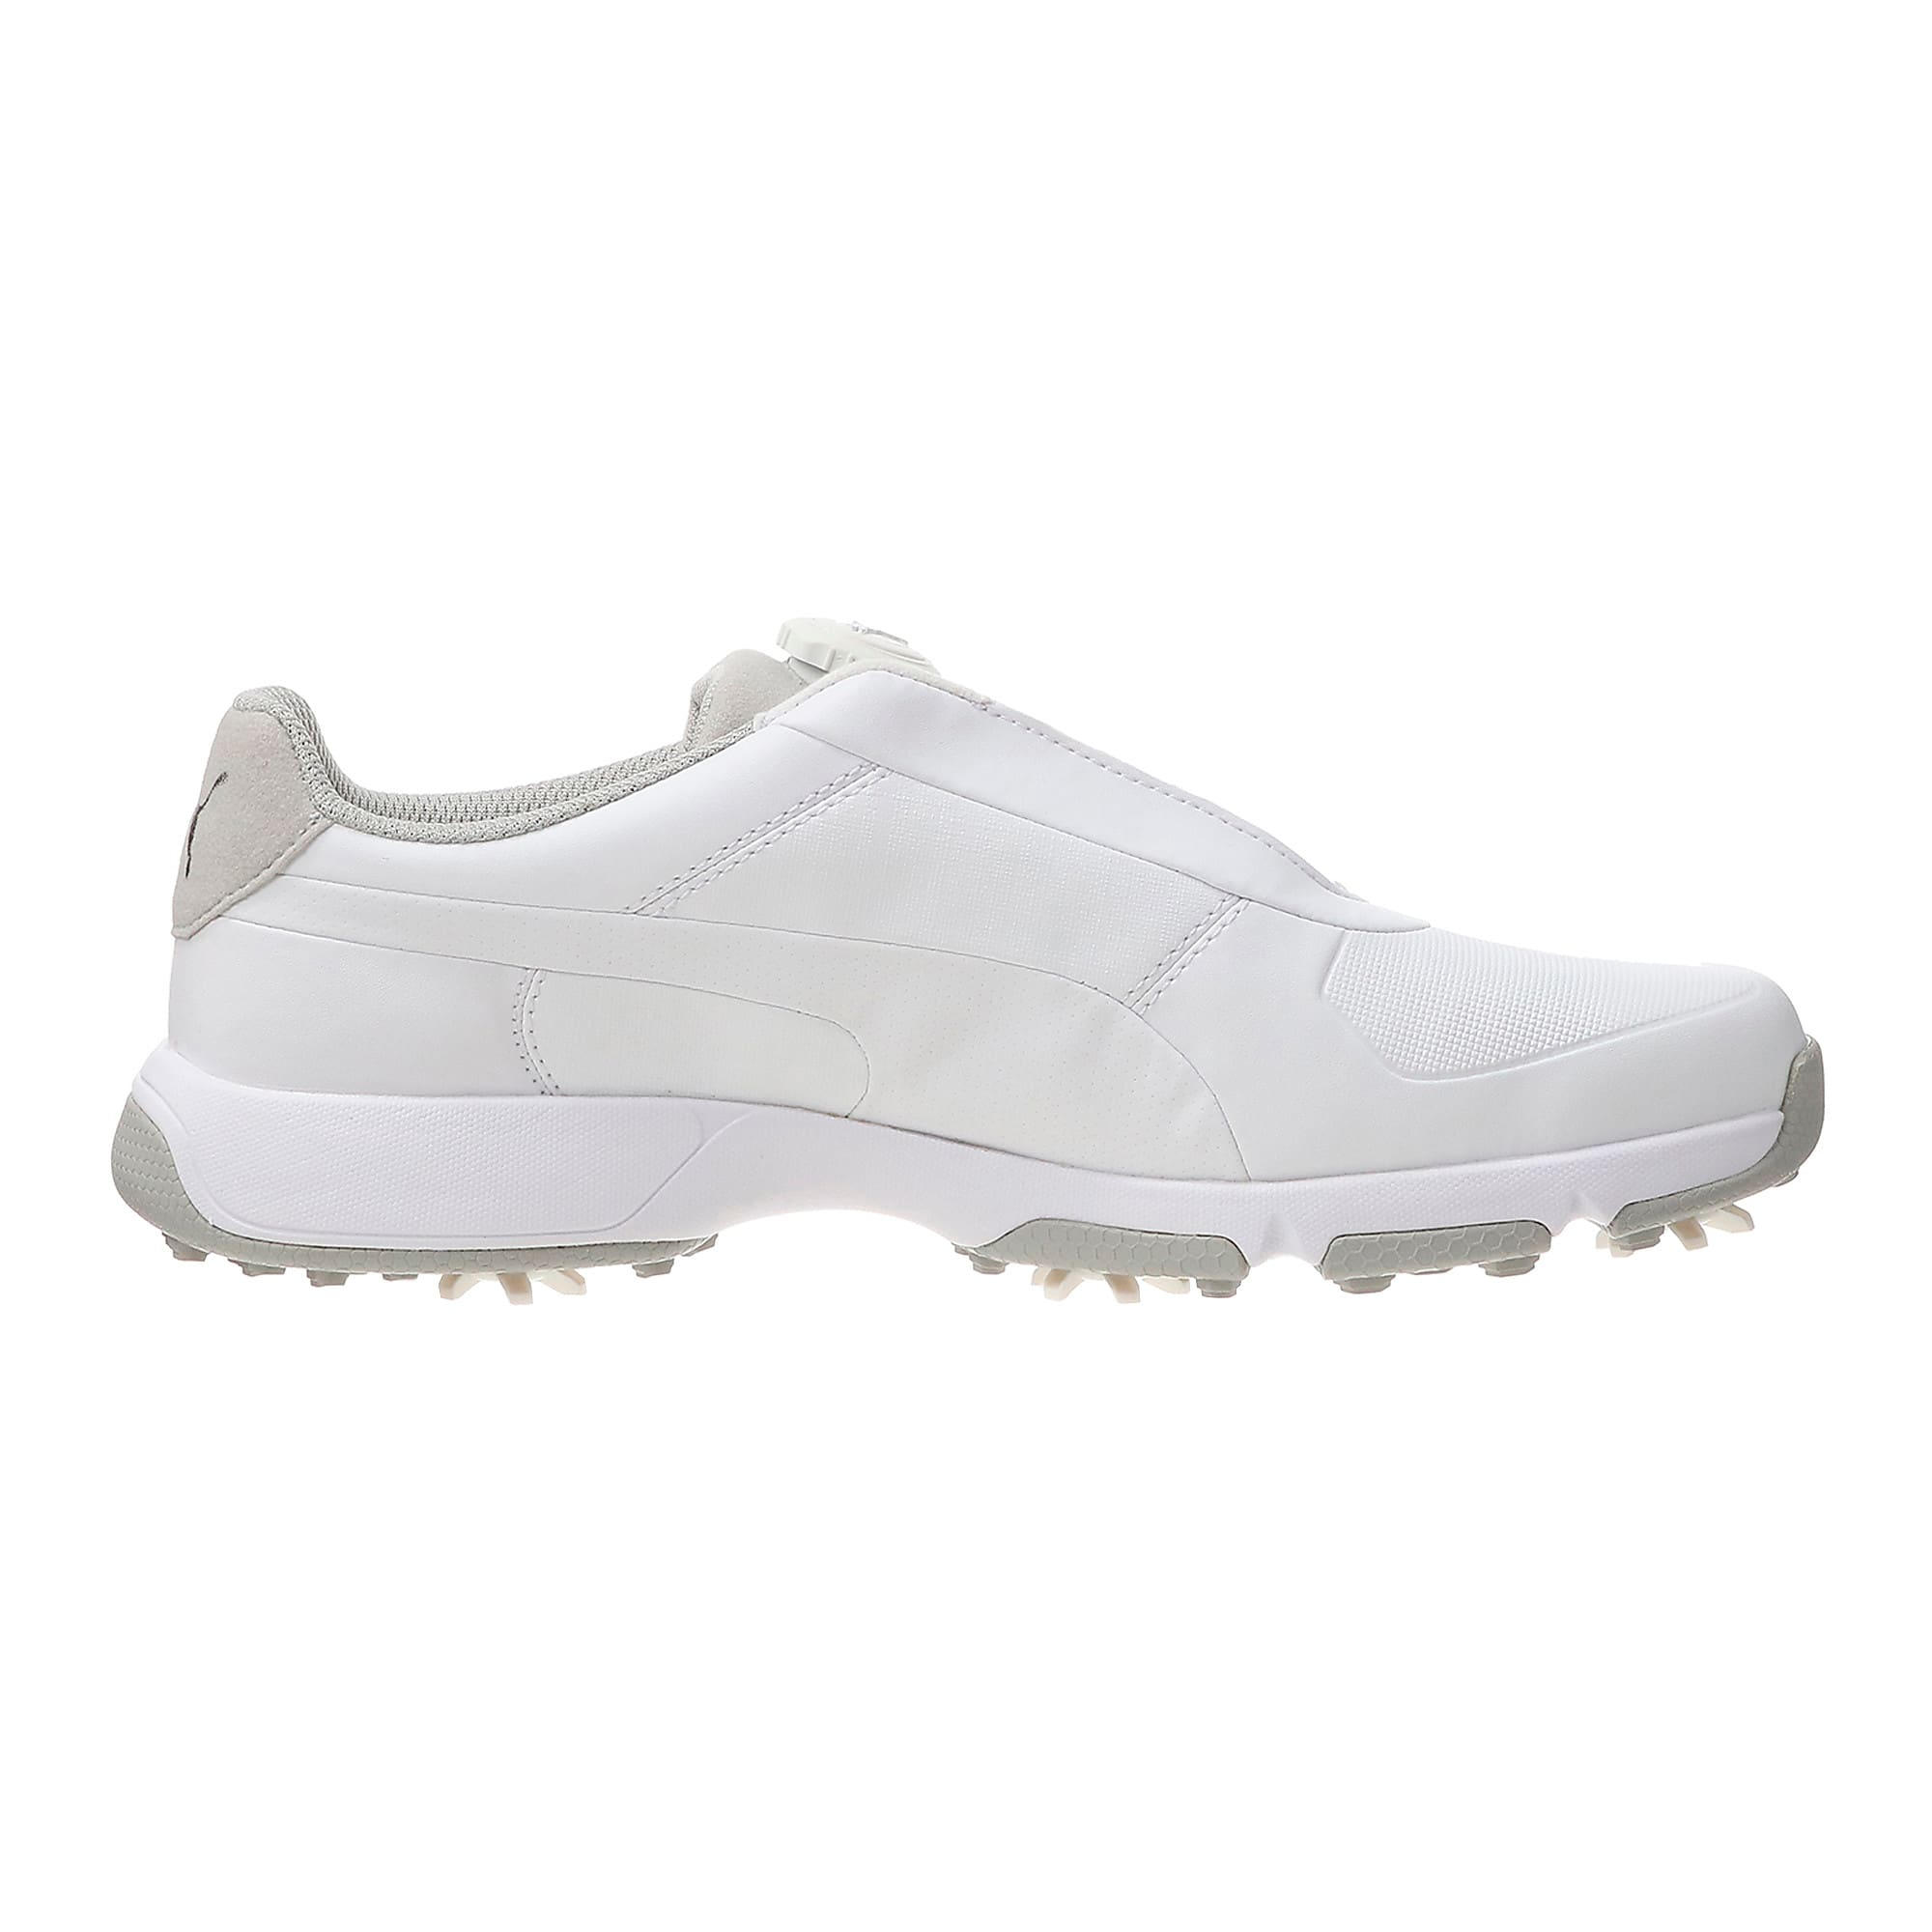 Thumbnail 3 of Chaussure de golf IGNITE Drive DISC pour homme, White-White, medium